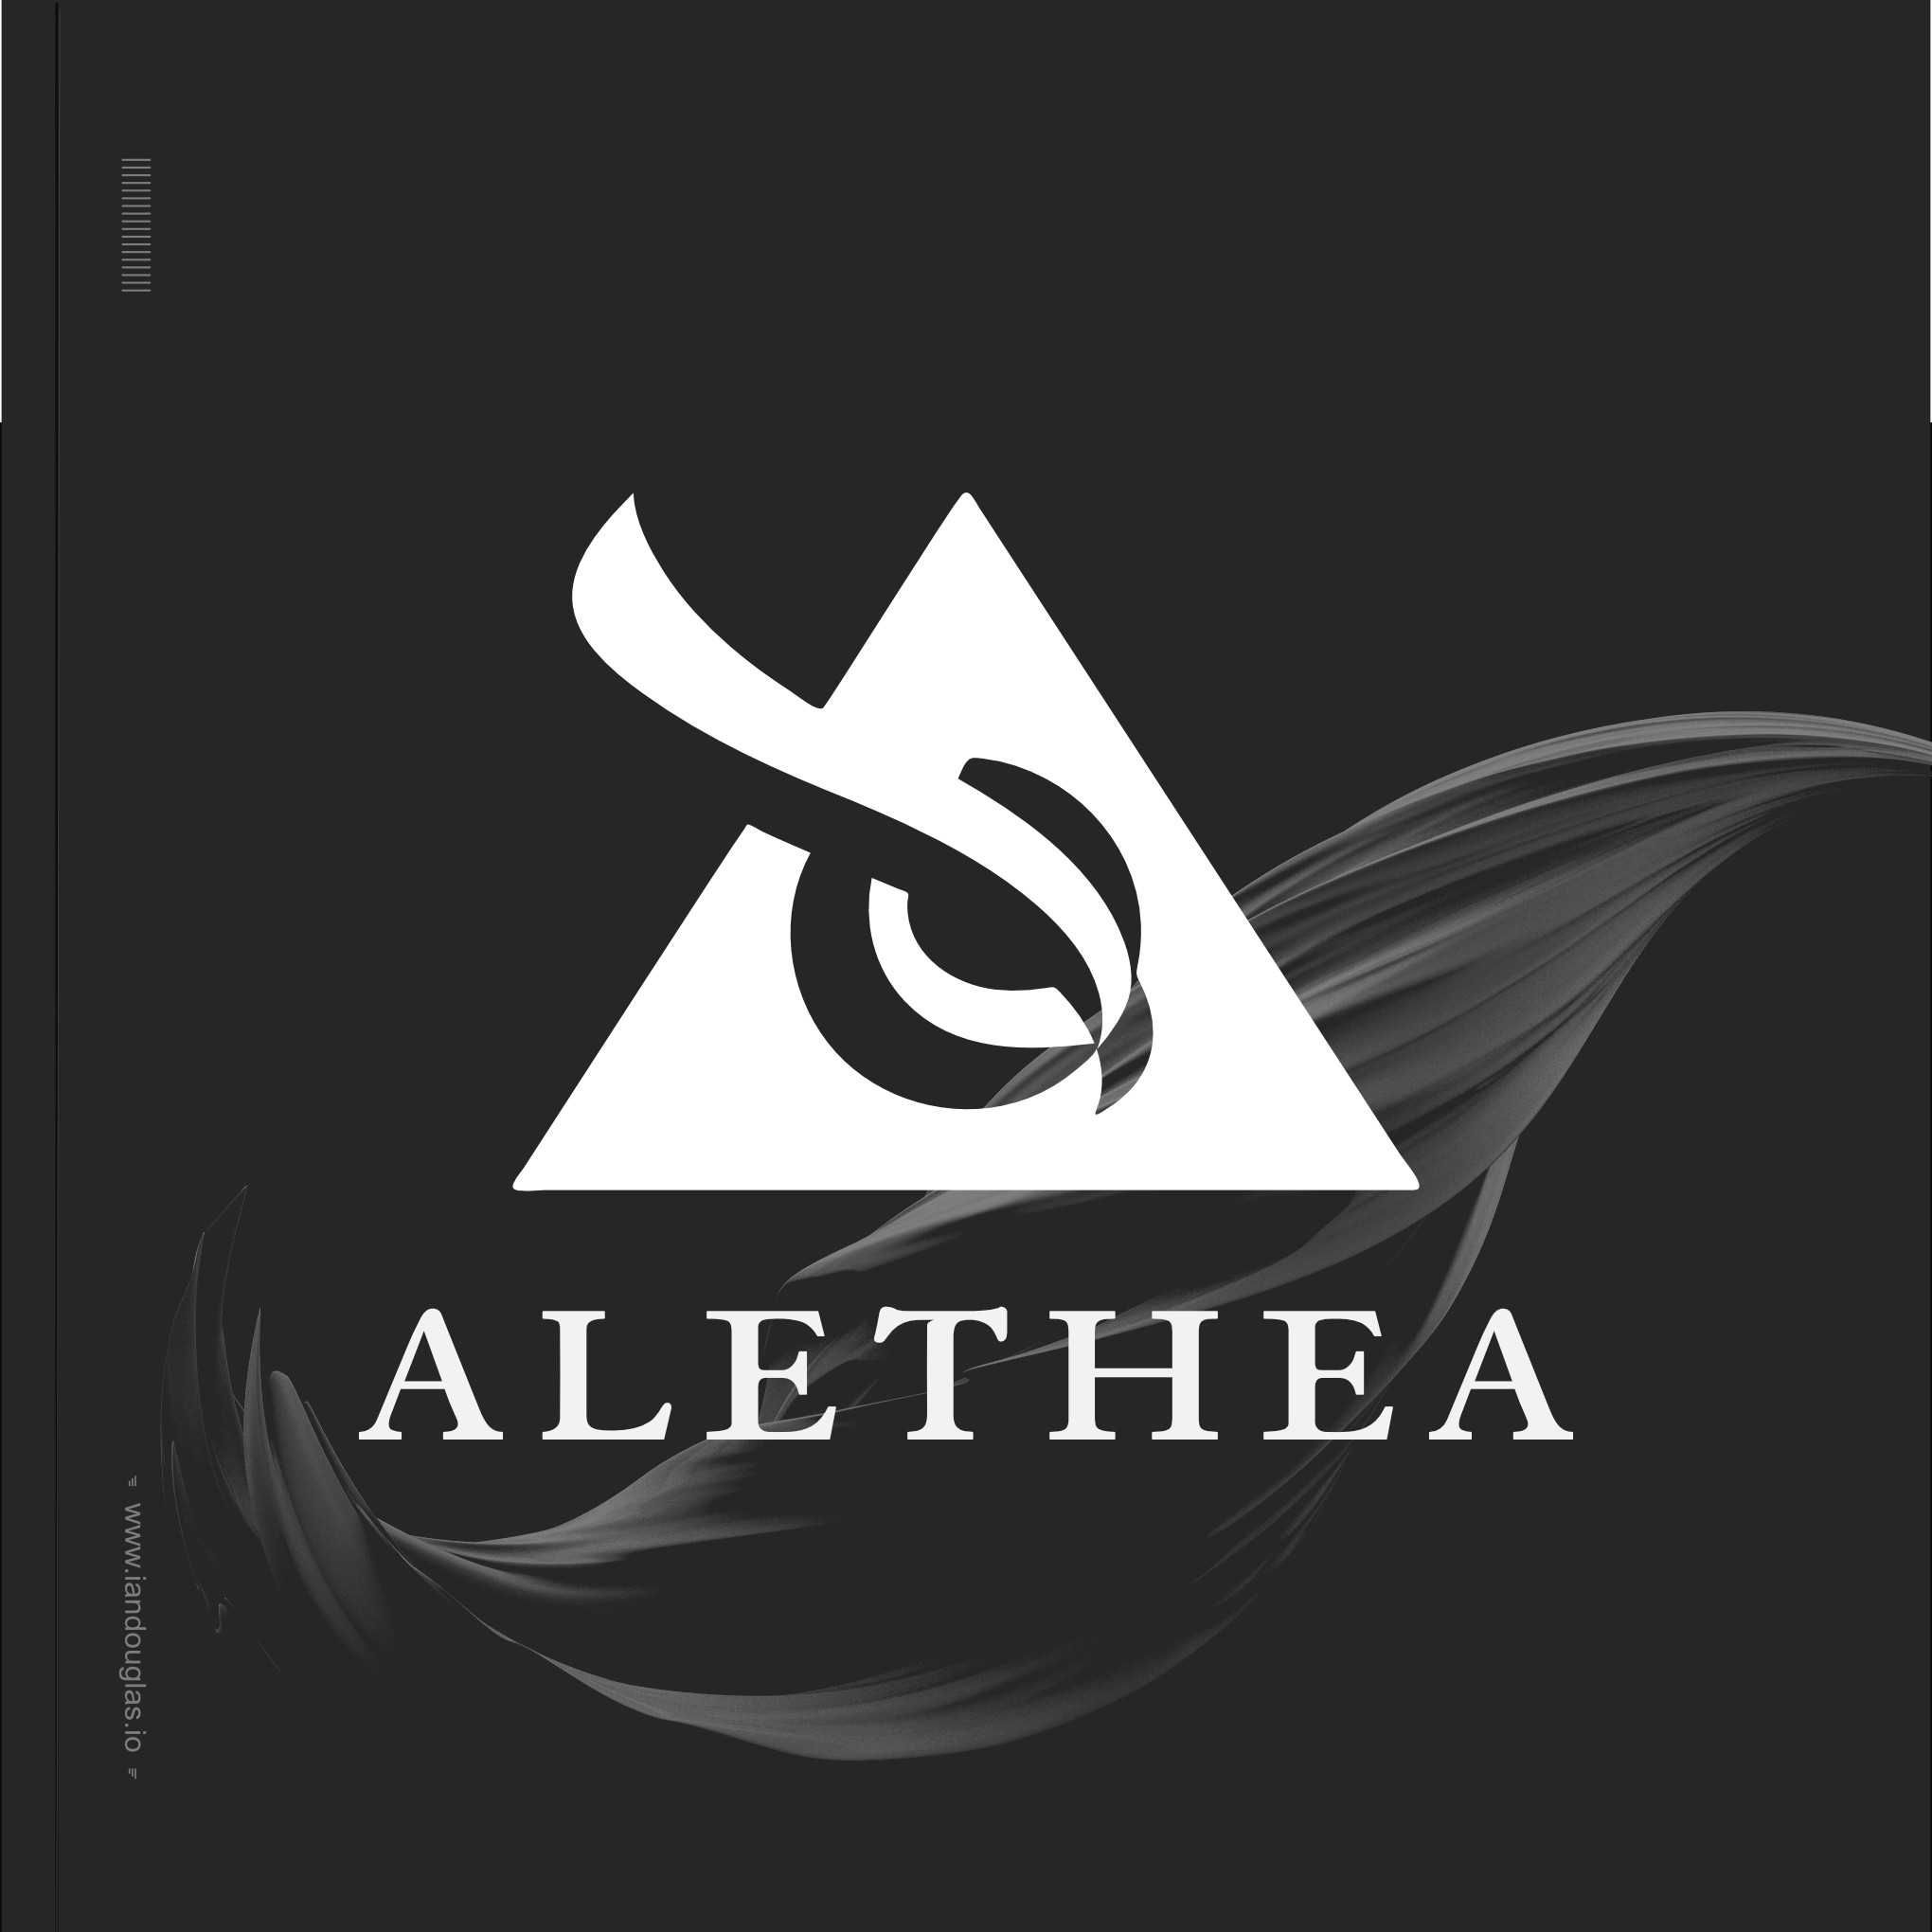 Create a sophisticated logo for Alethea